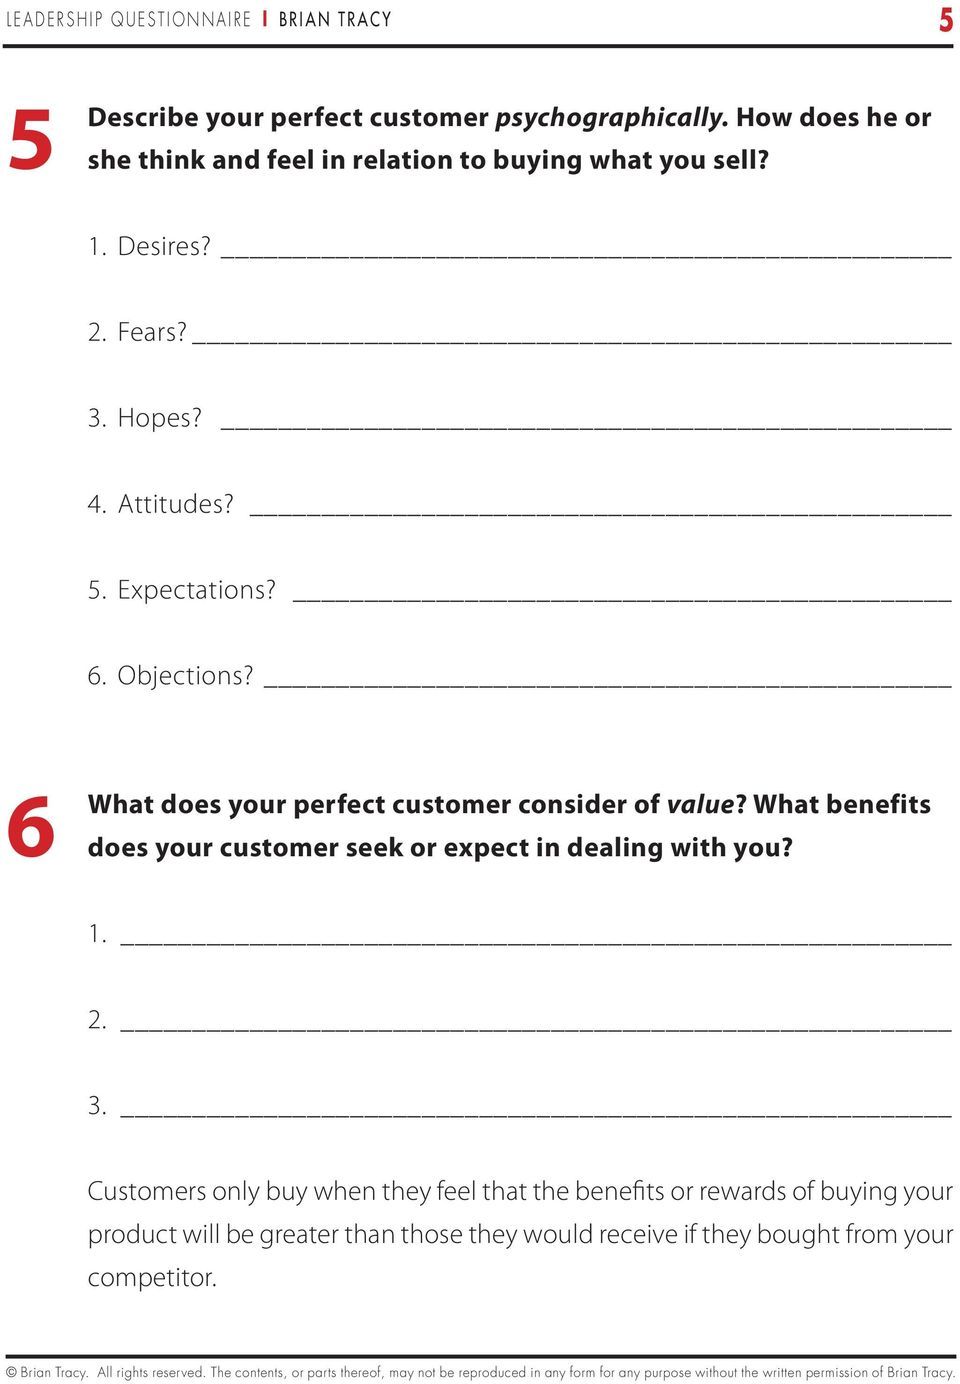 Objections? 6. What does your perfect customer consider of value? What benefits does your customer seek or expect in dealing with you?